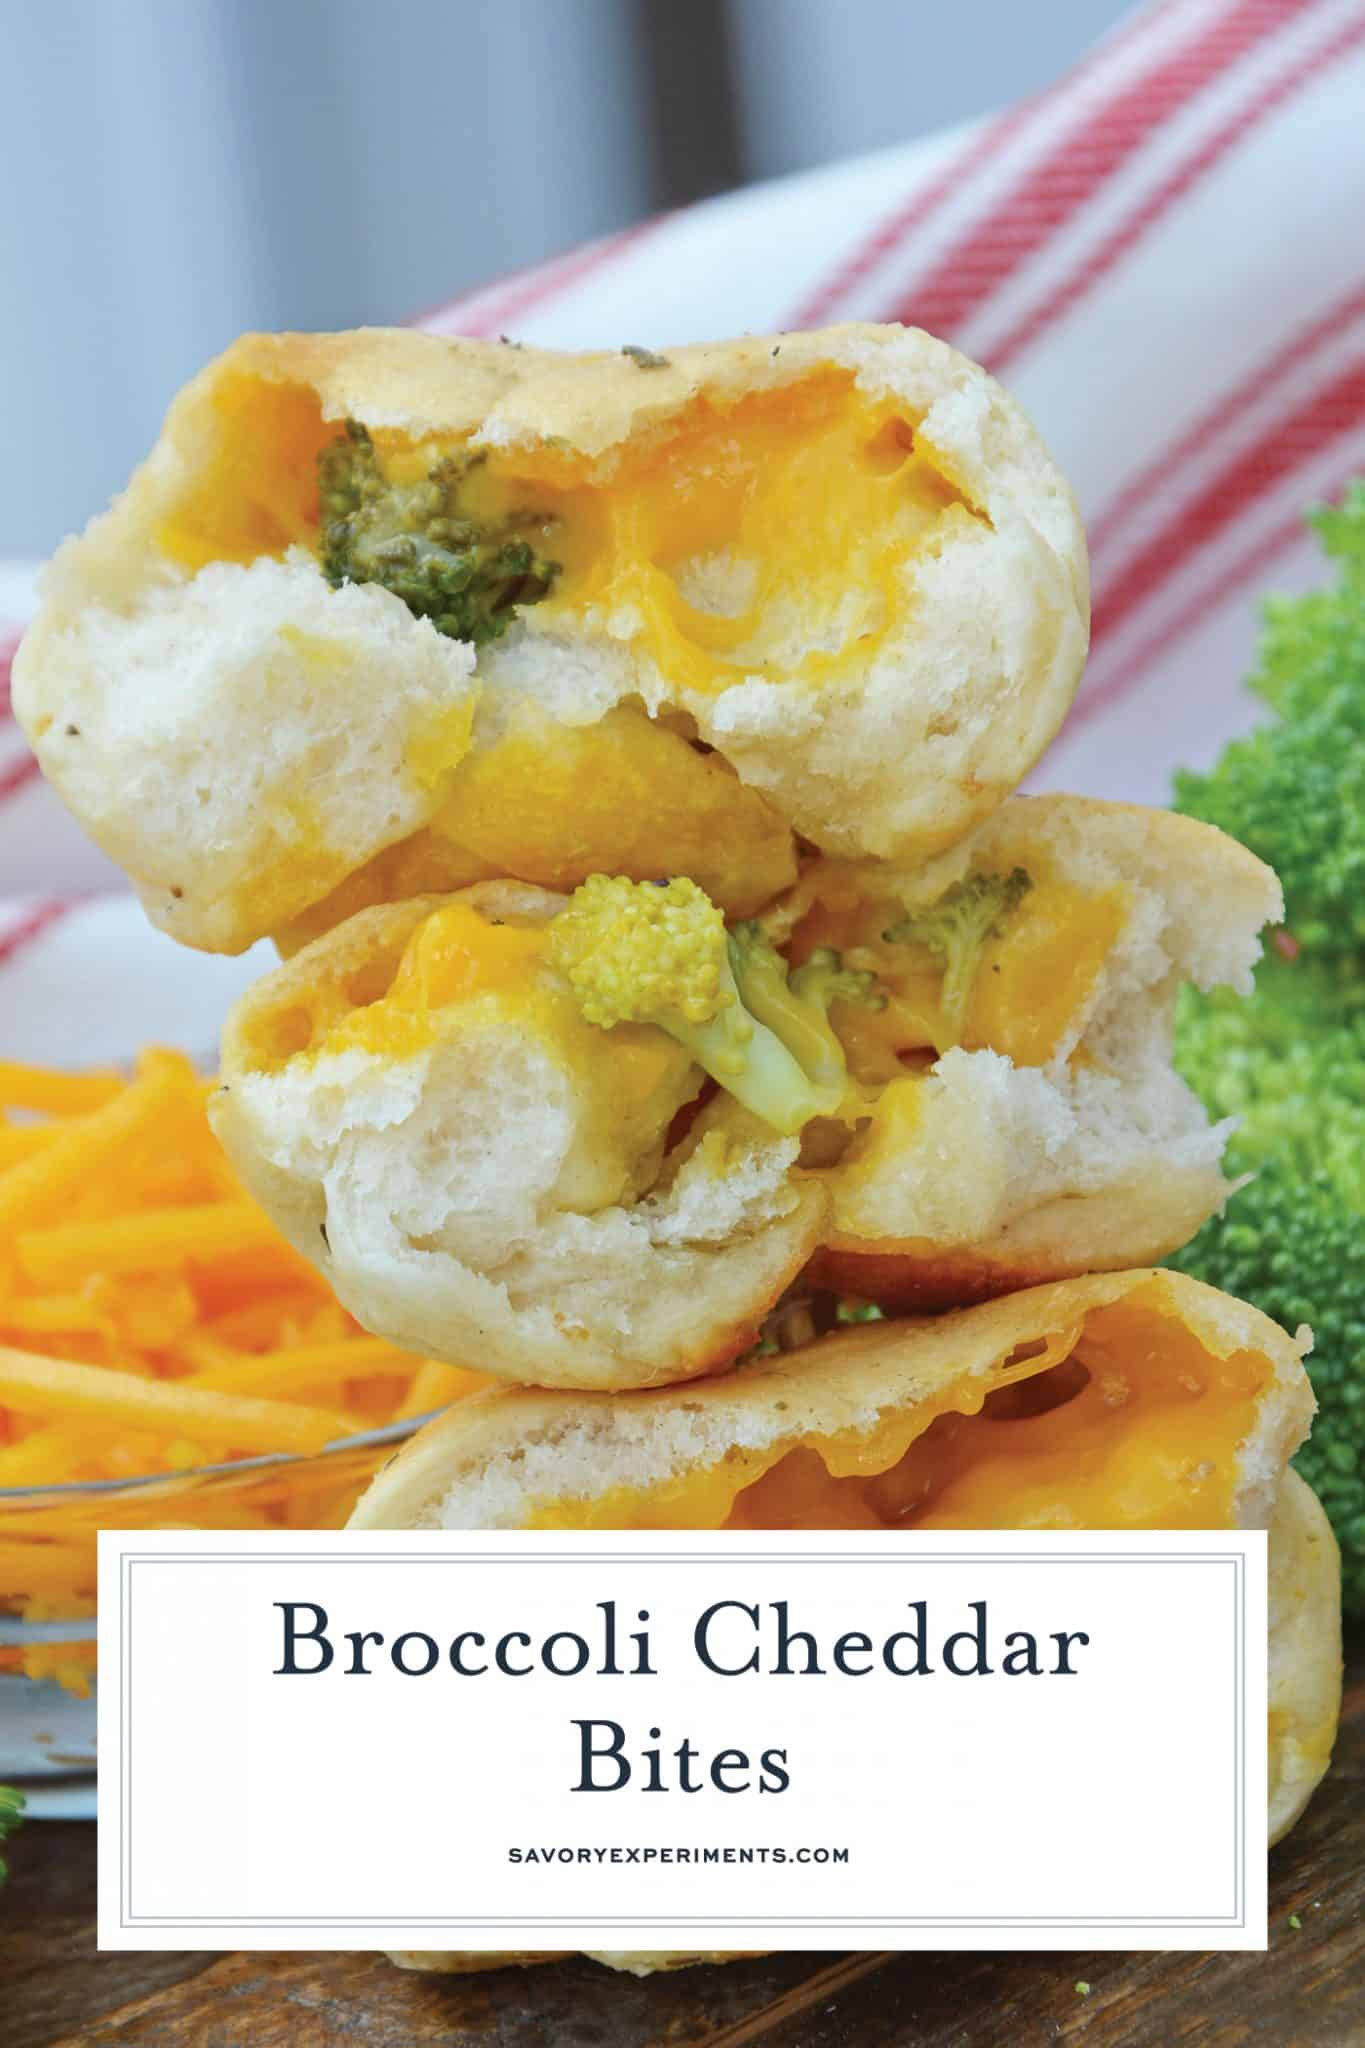 Broccoli Cheddar Bites are pizza dough stuffed with gooey plant-based cheddar shreds, broccoli and topped with a vegan garlic butter sauce. www.savoryexperiments.com